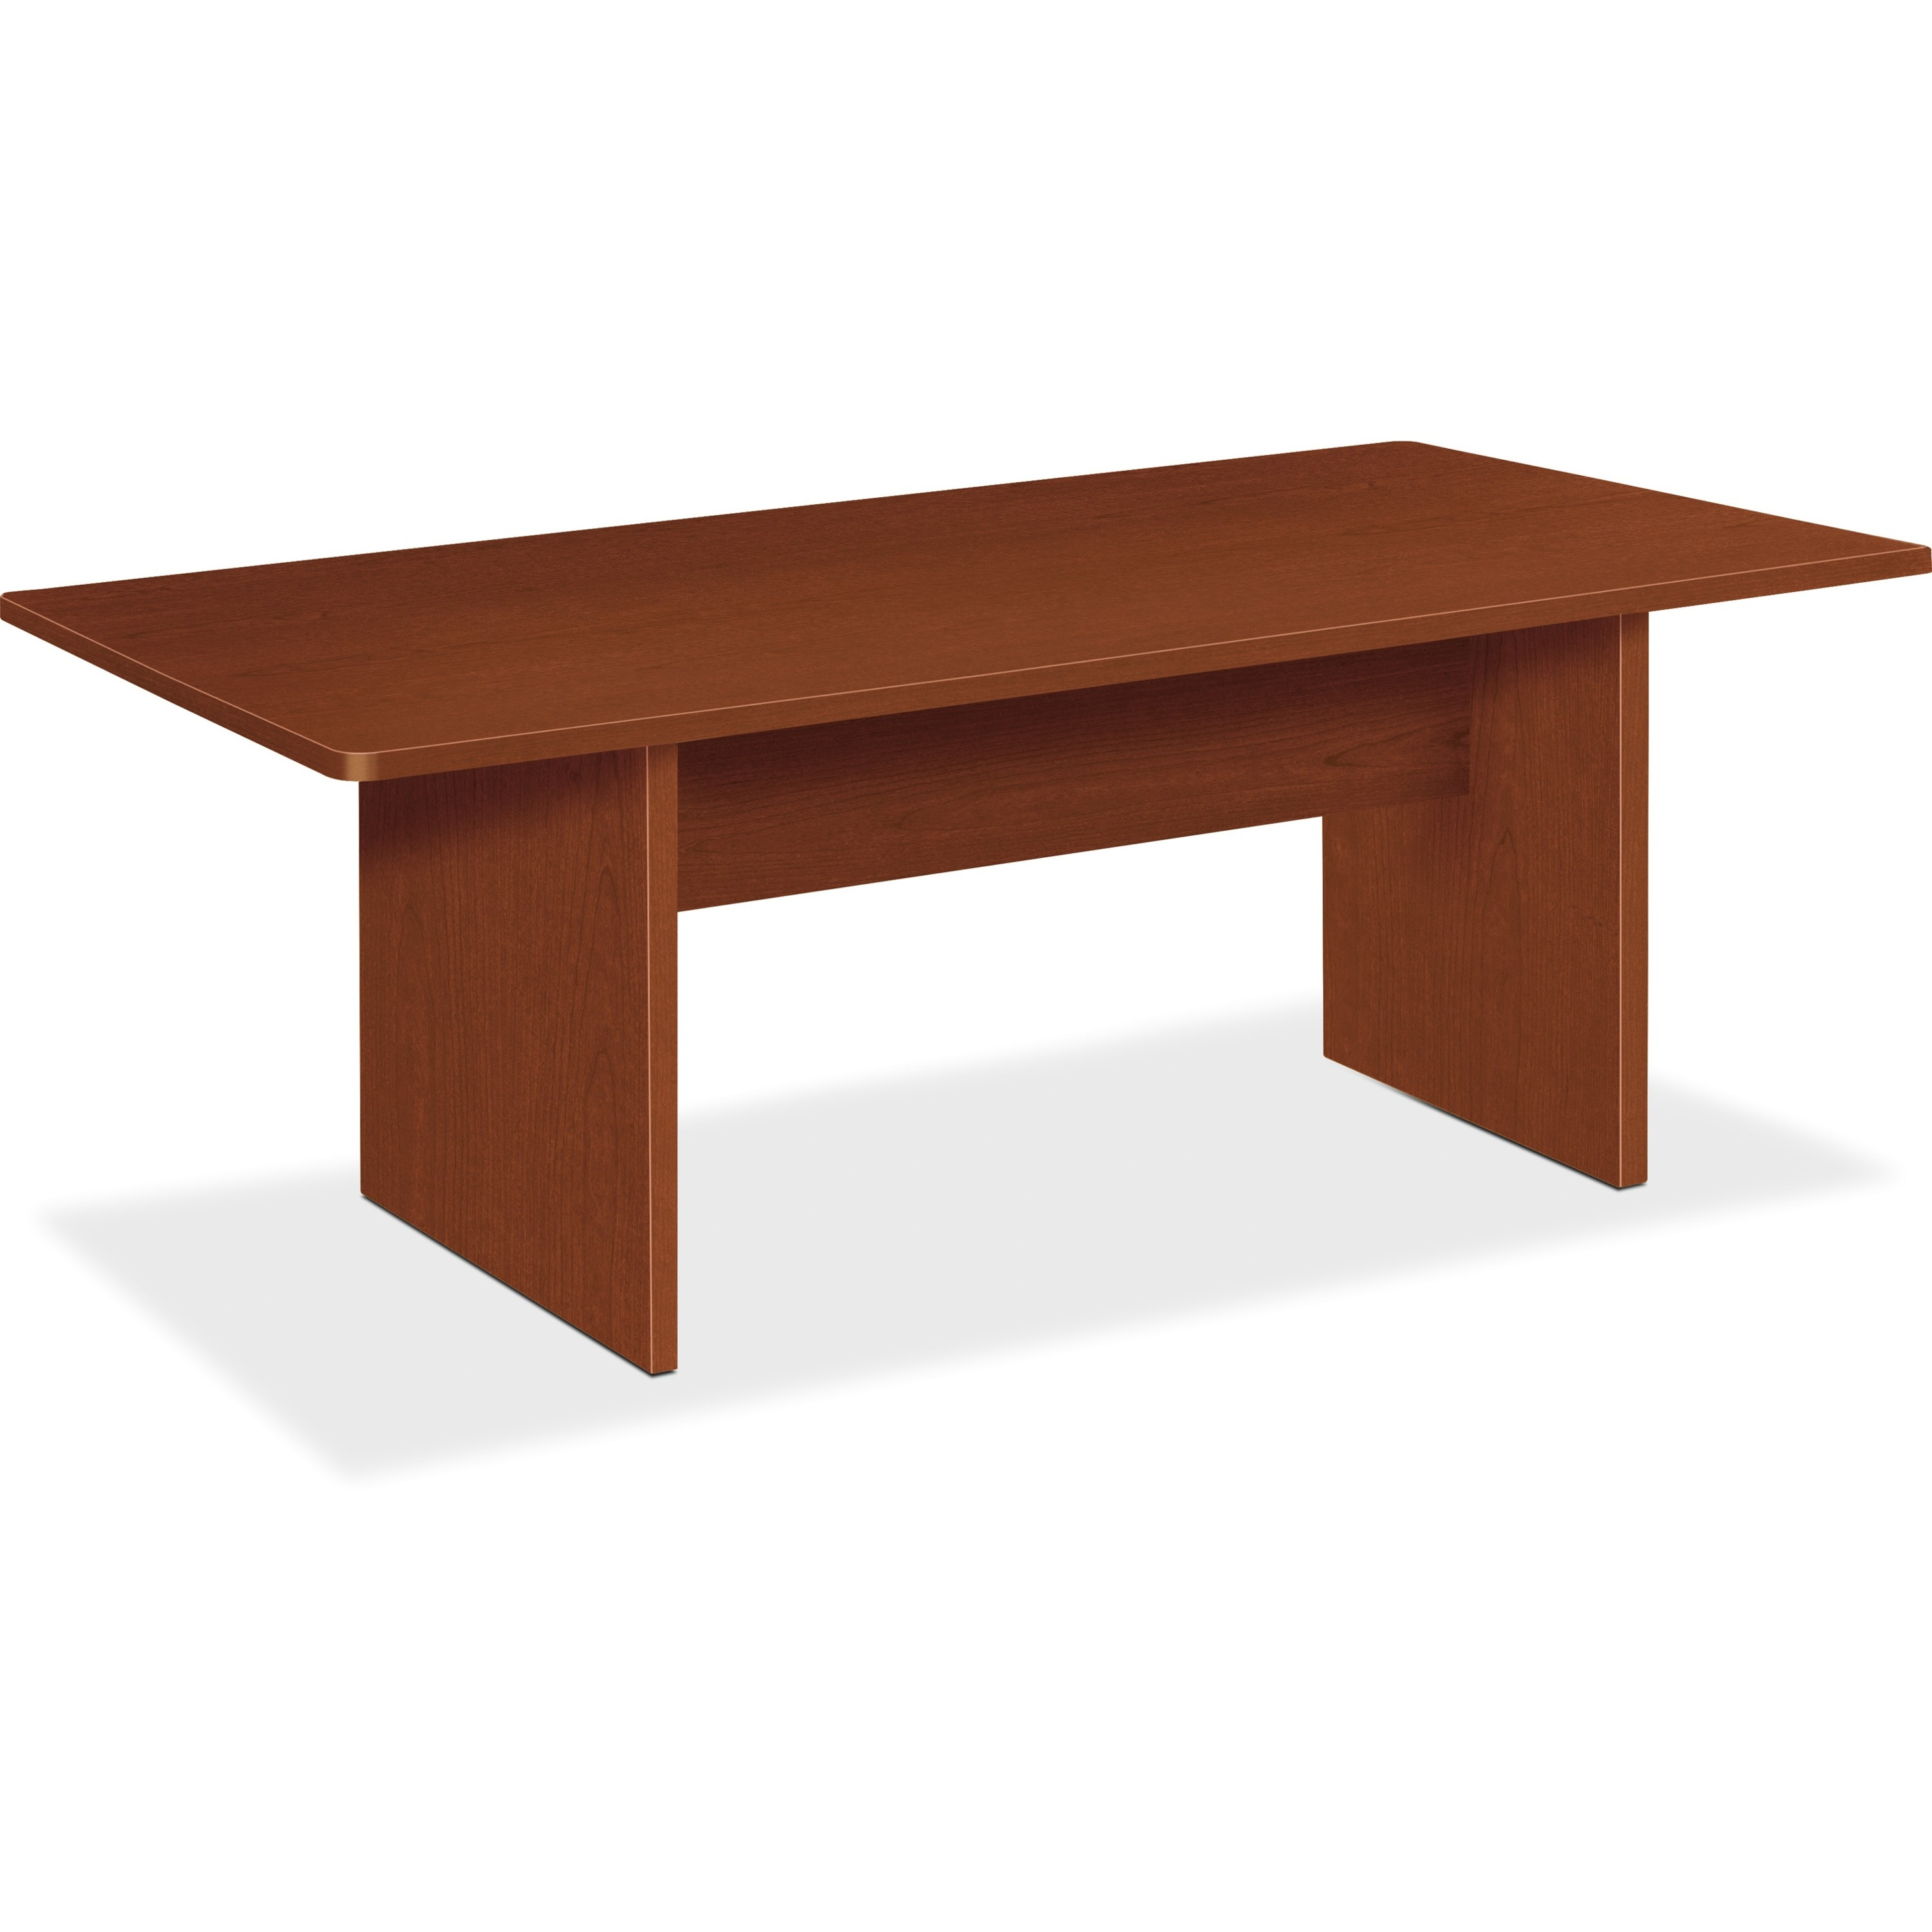 Kamloops Office Systems Furniture Furniture Collections Desks - 72 x 36 conference table